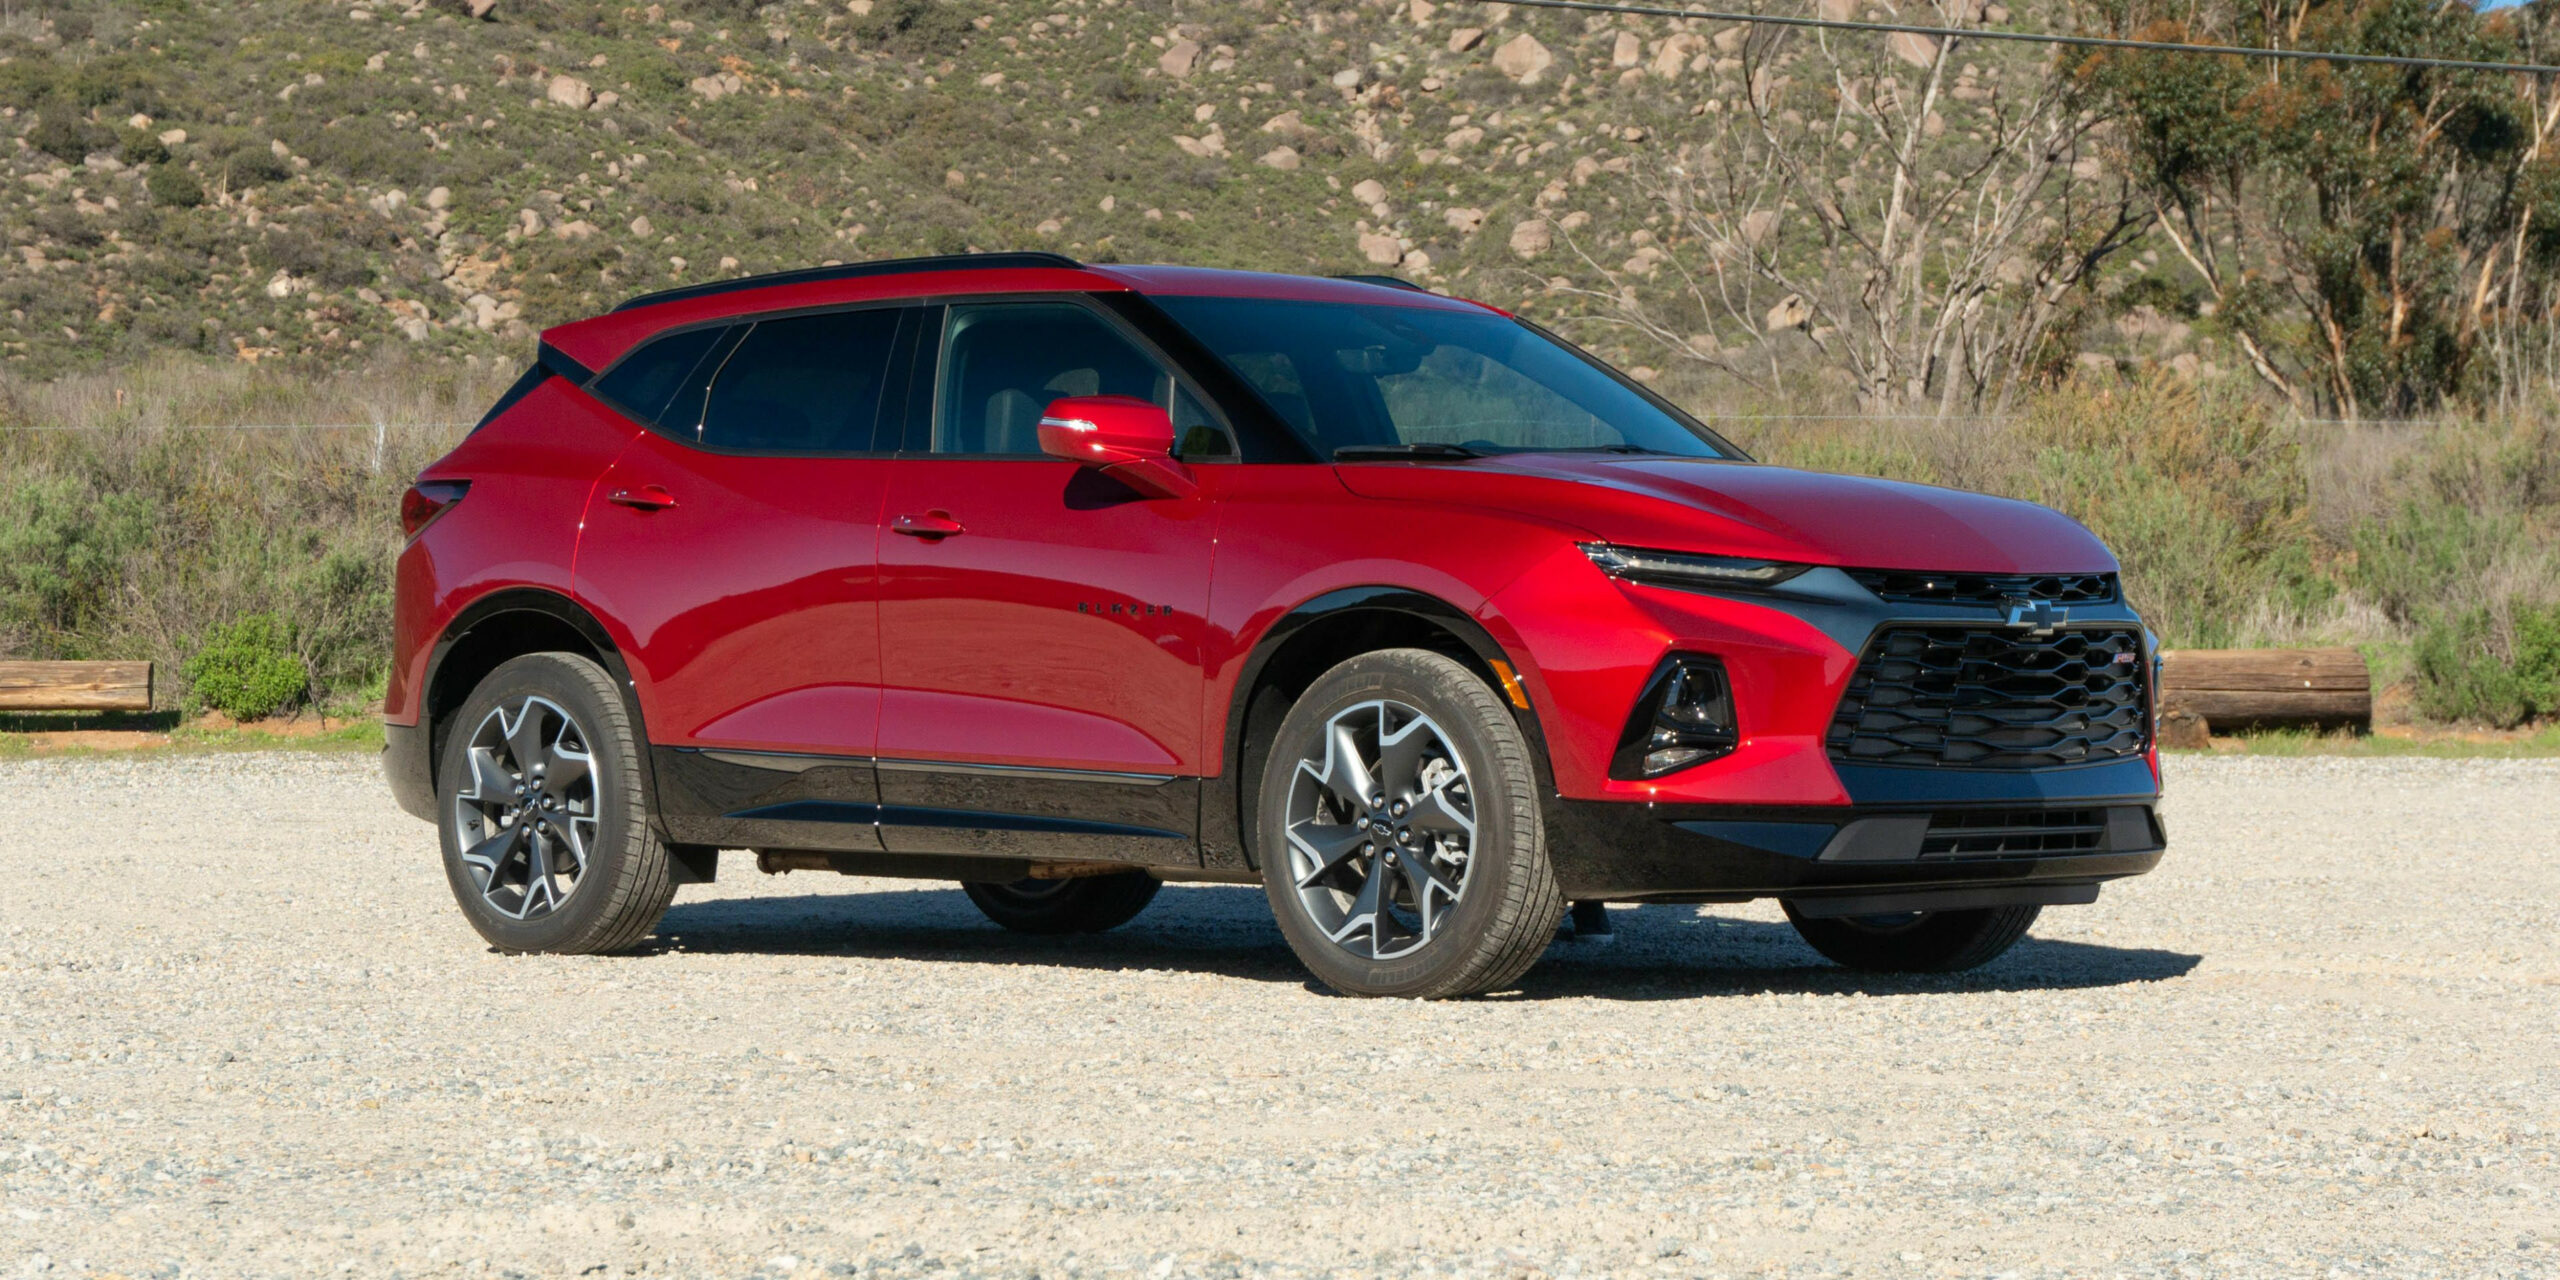 6 Chevy Blazer: Model overview, pricing, tech and specs - Roadshow